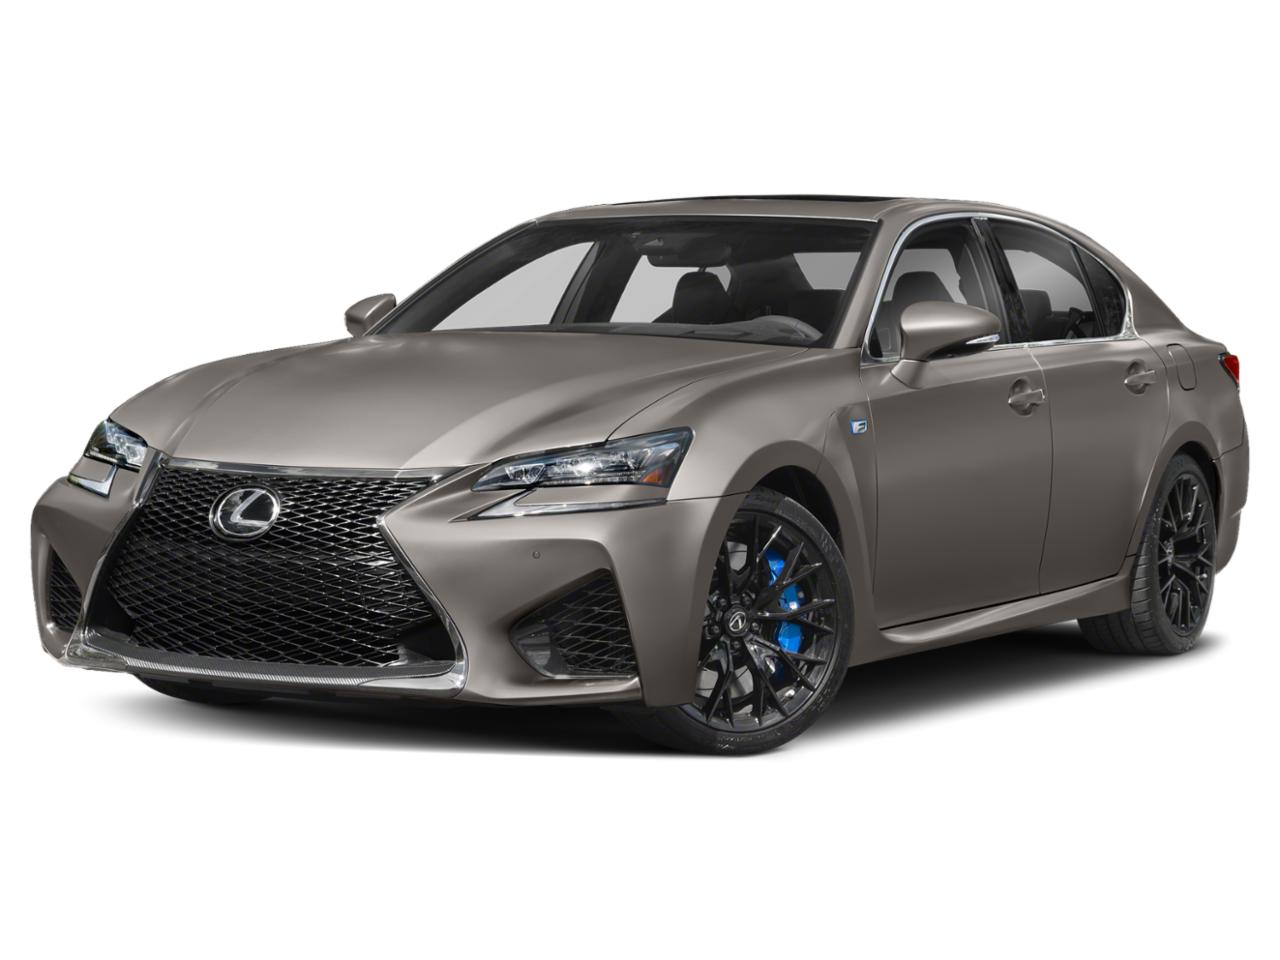 2020 Lexus GS F Vehicle Photo in Dallas, TX 75235